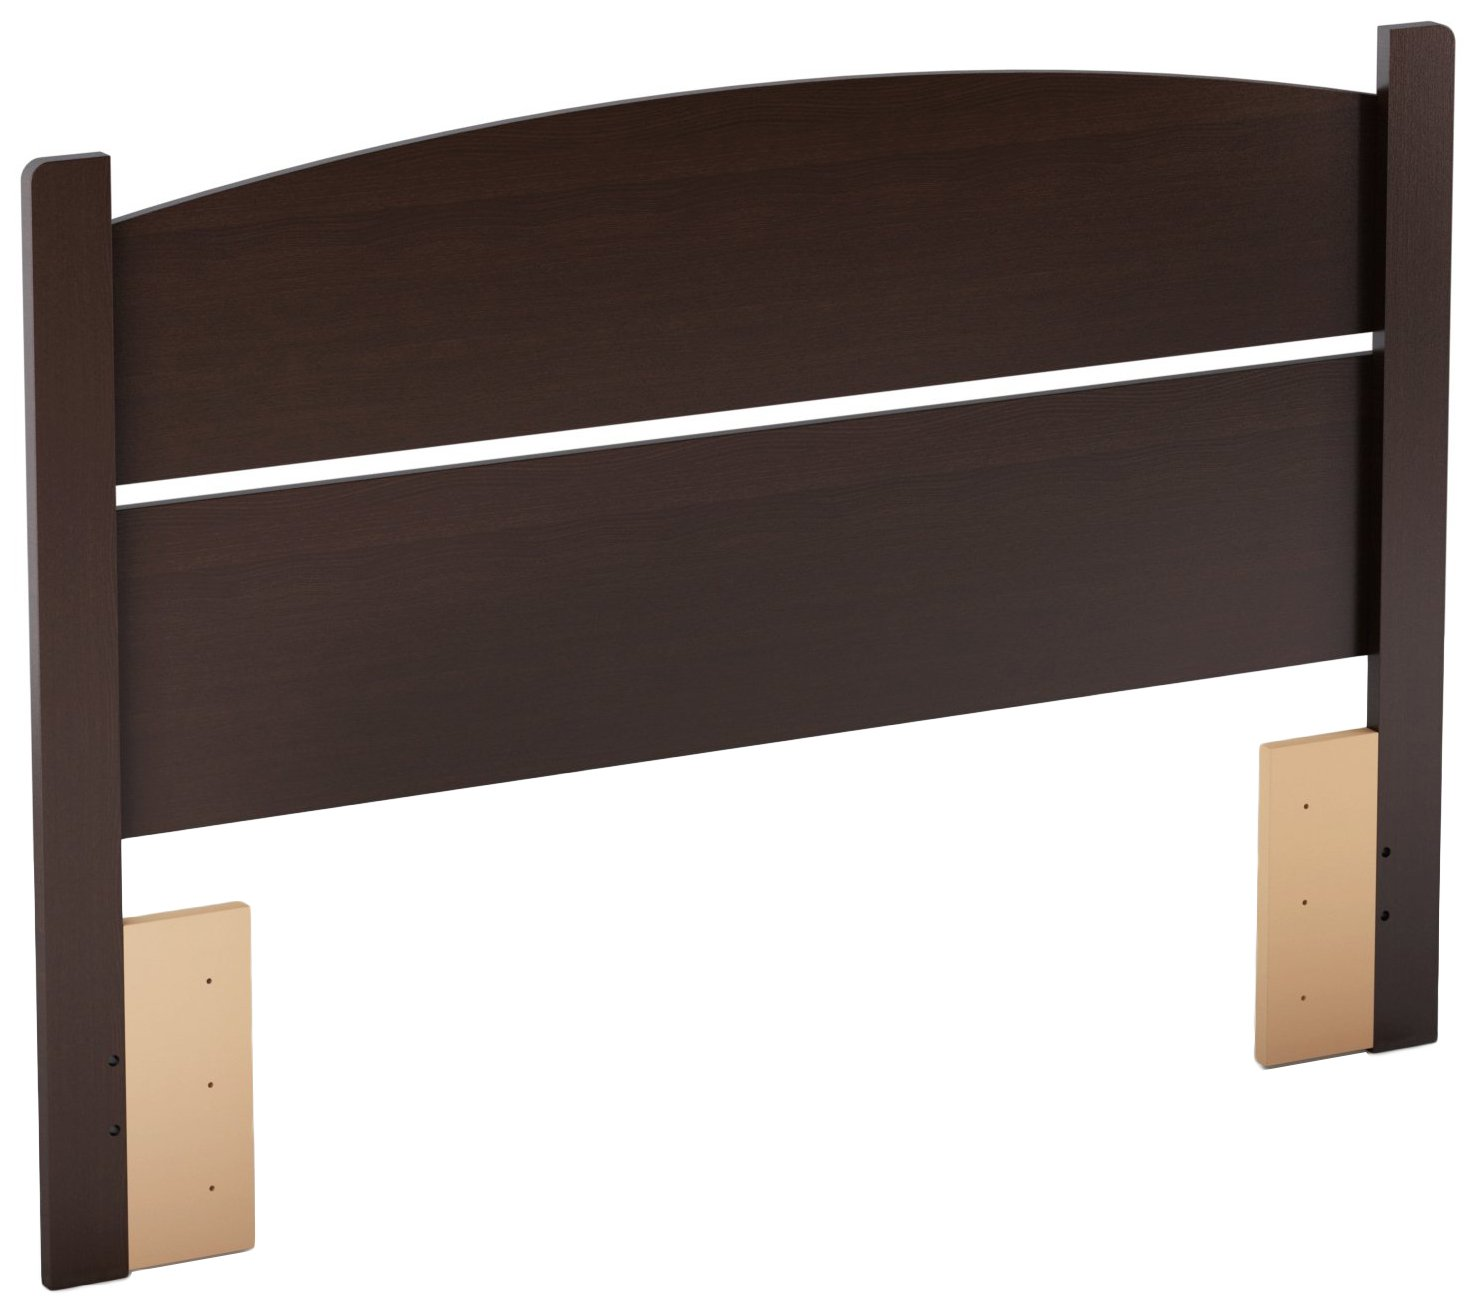 South Shore Libra Headboard, Full 54-Inch, Chocolate